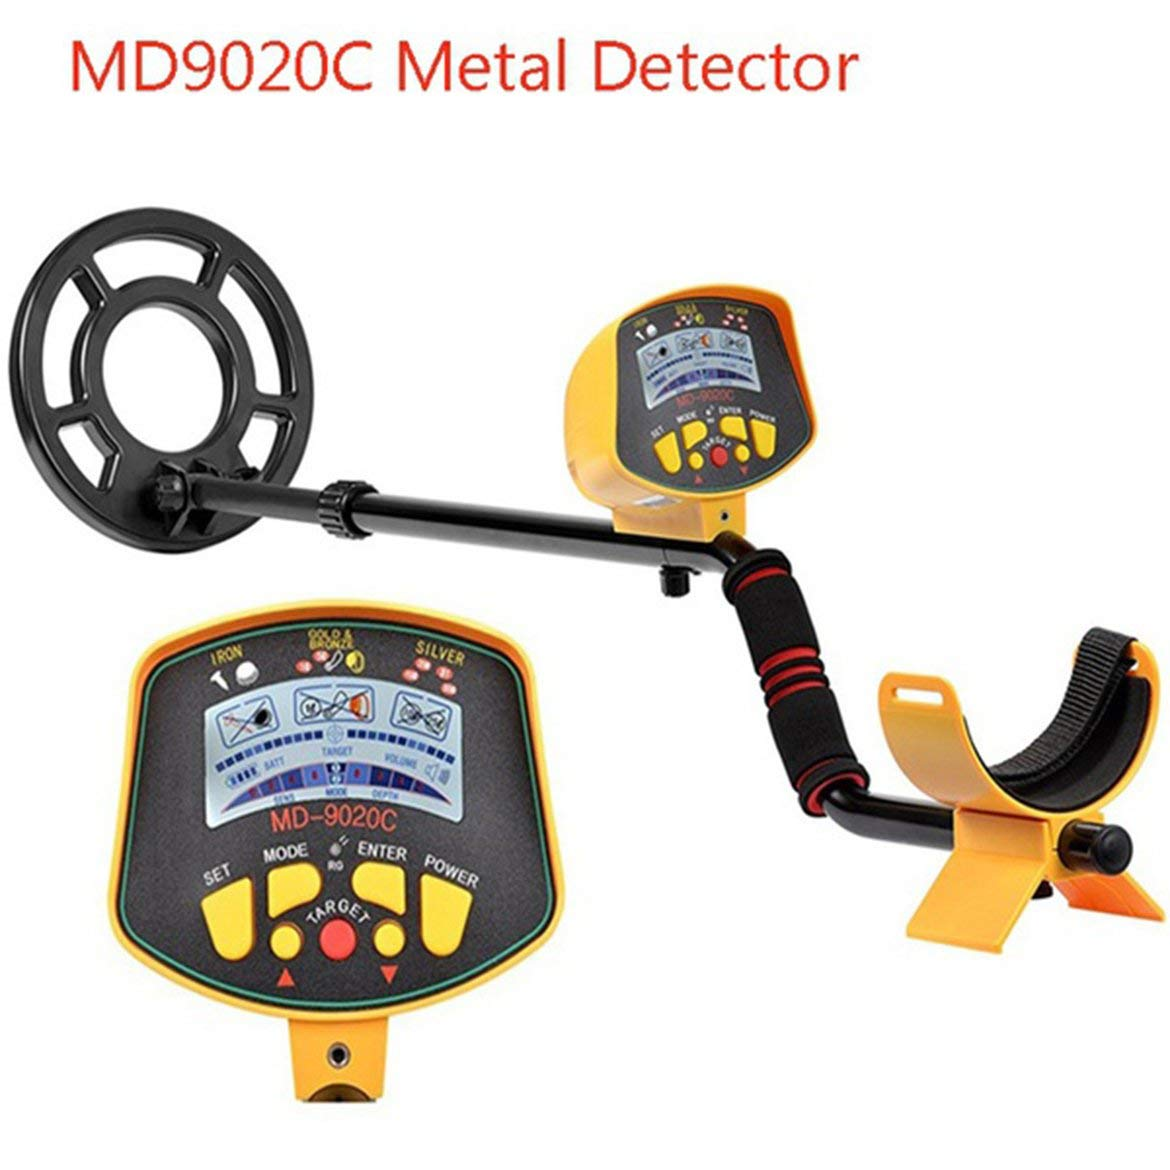 Detector de Metales subterráneo Profesional MD9020C Security Display de Alta sensibilidad LCD Treasure Gold Hunter Finder Scanner: Amazon.es: Jardín